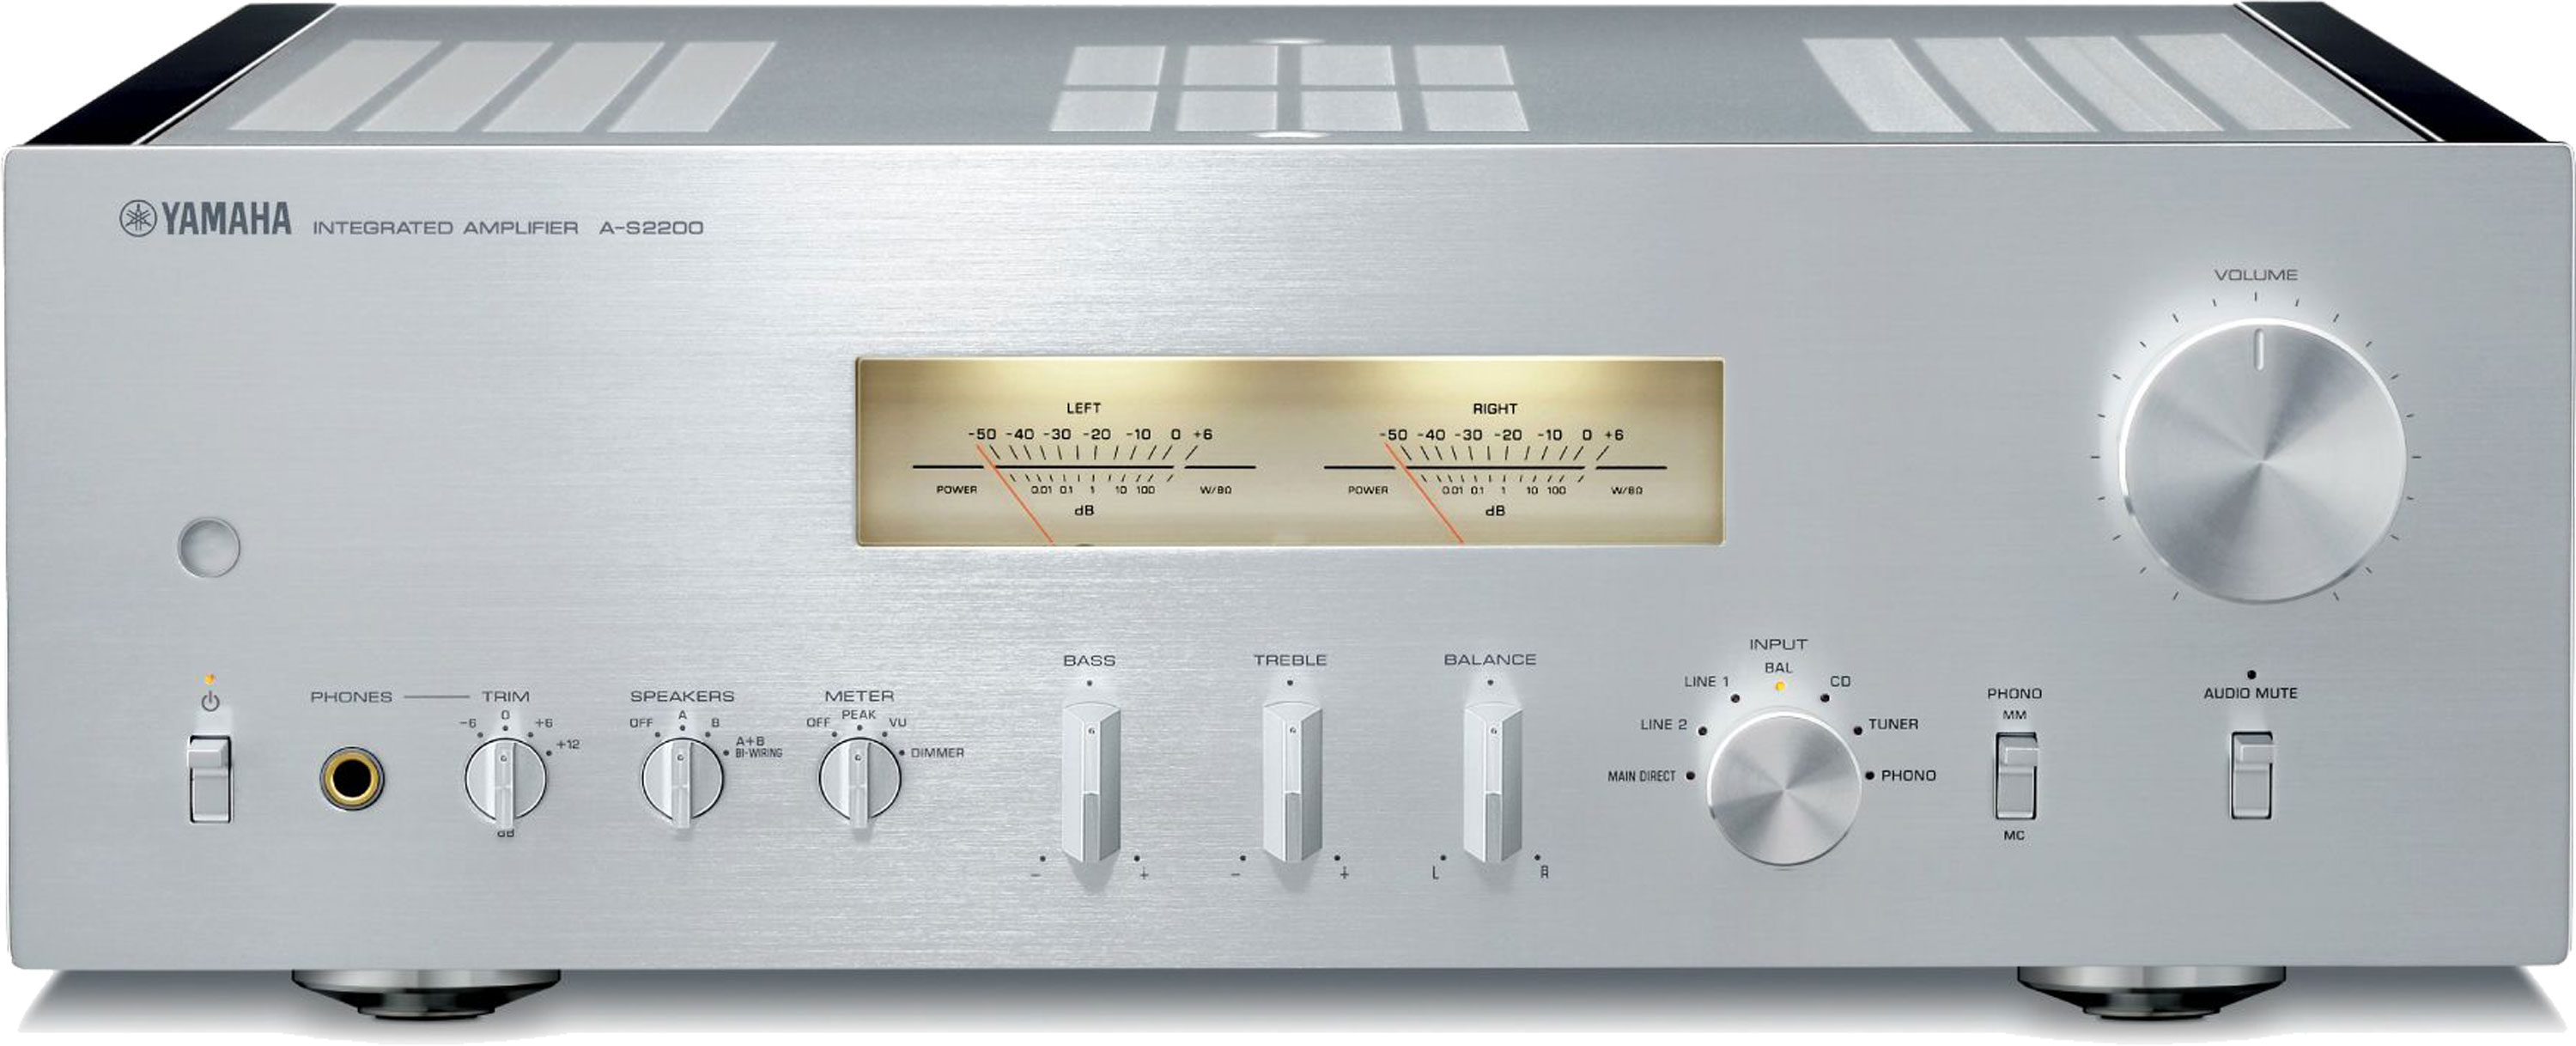 YAMAHA A-S2200 Stereo Integrated Amplifier Silver